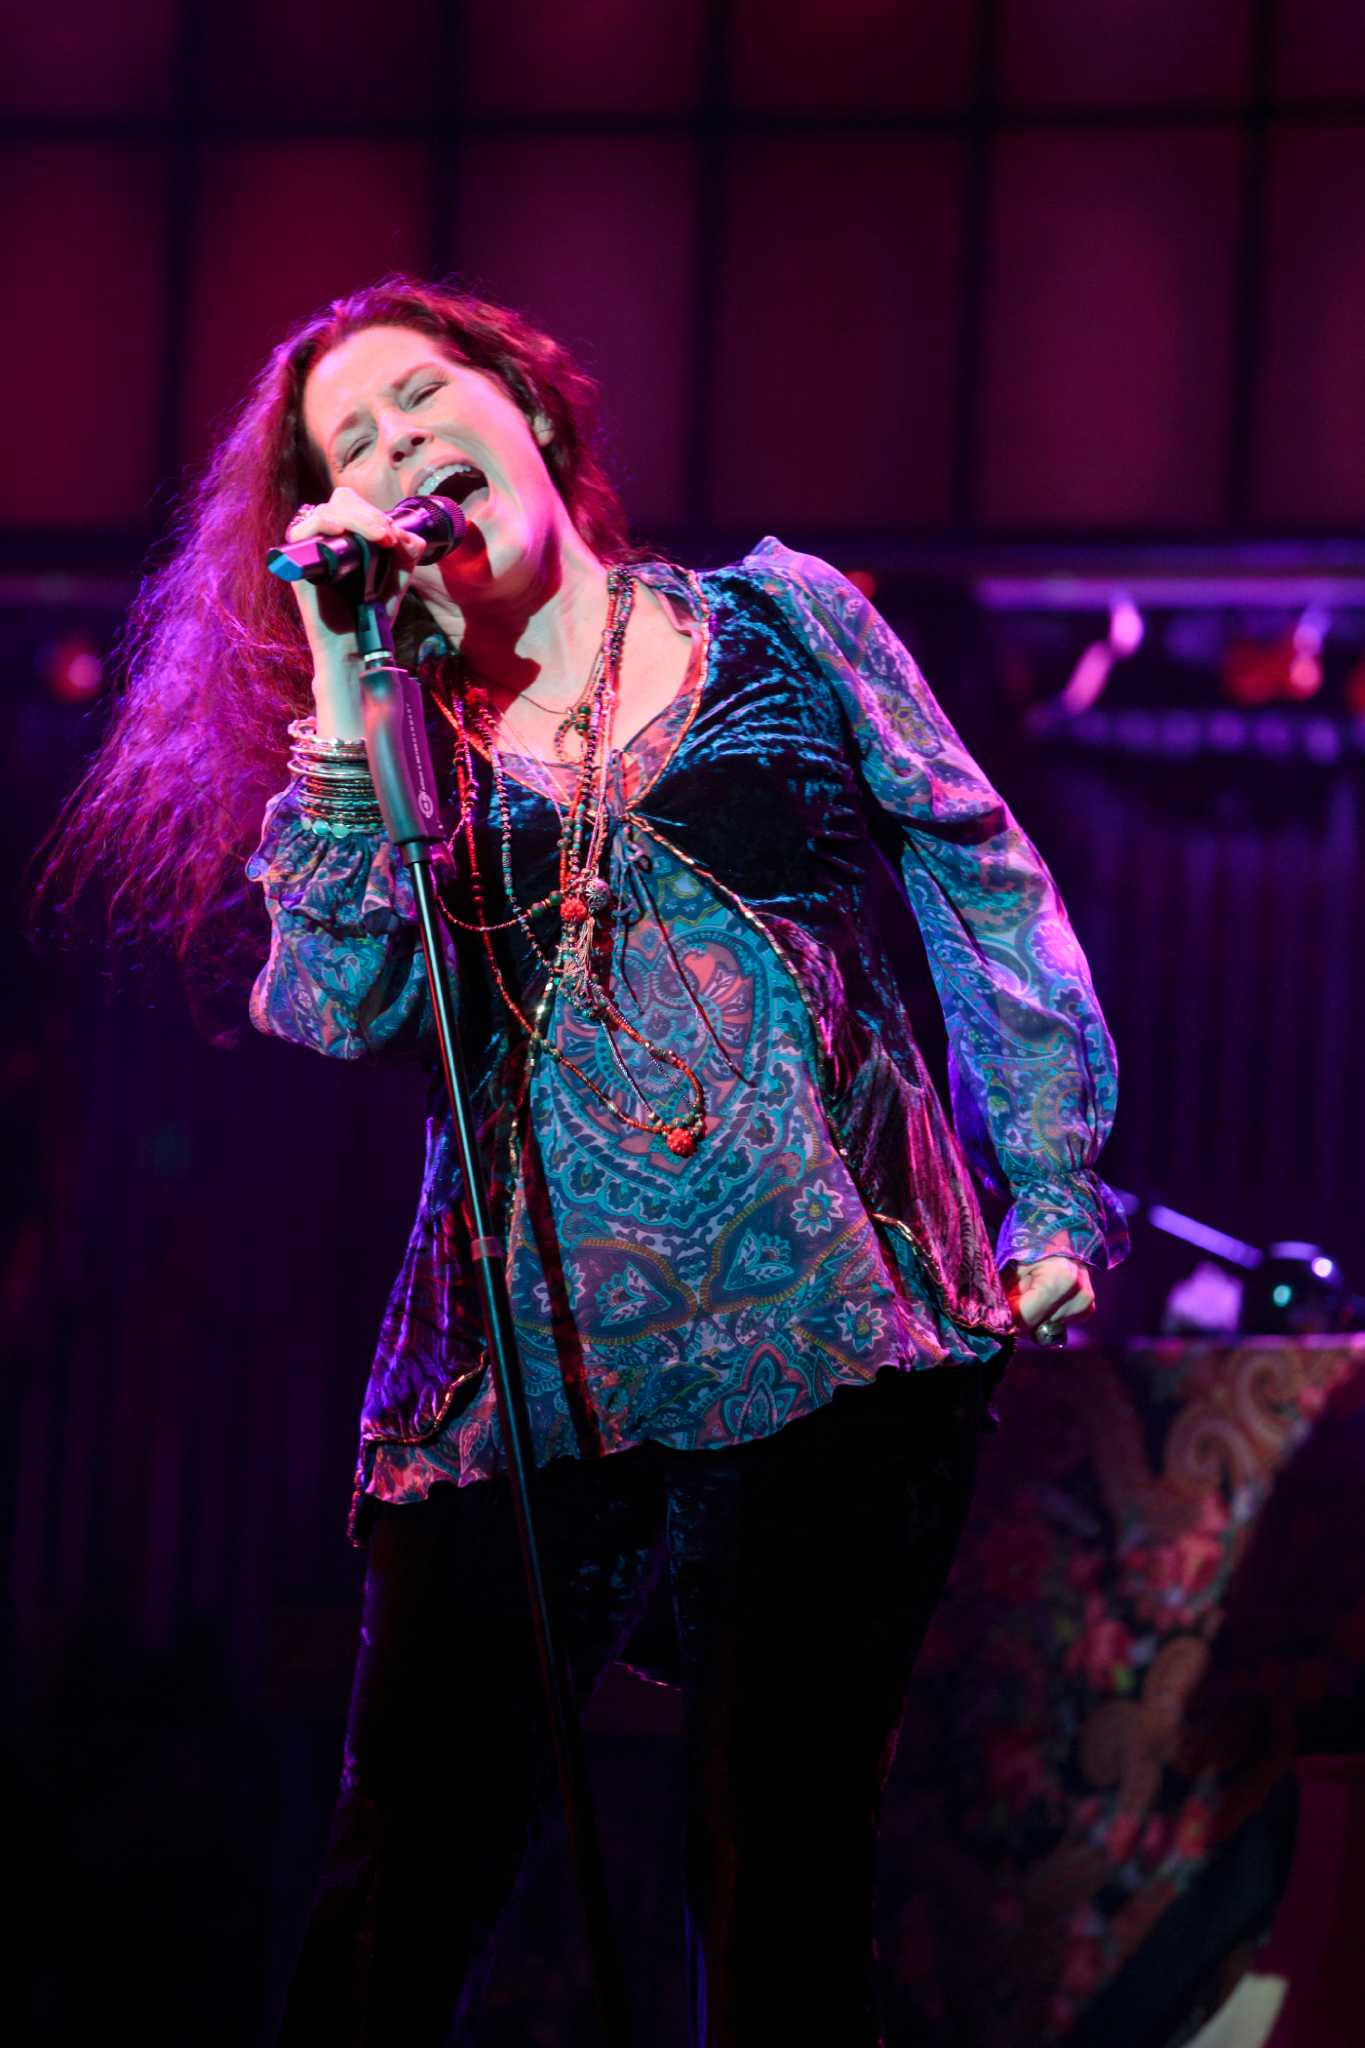 Singing The Praises Of A Night With Janis Joplin